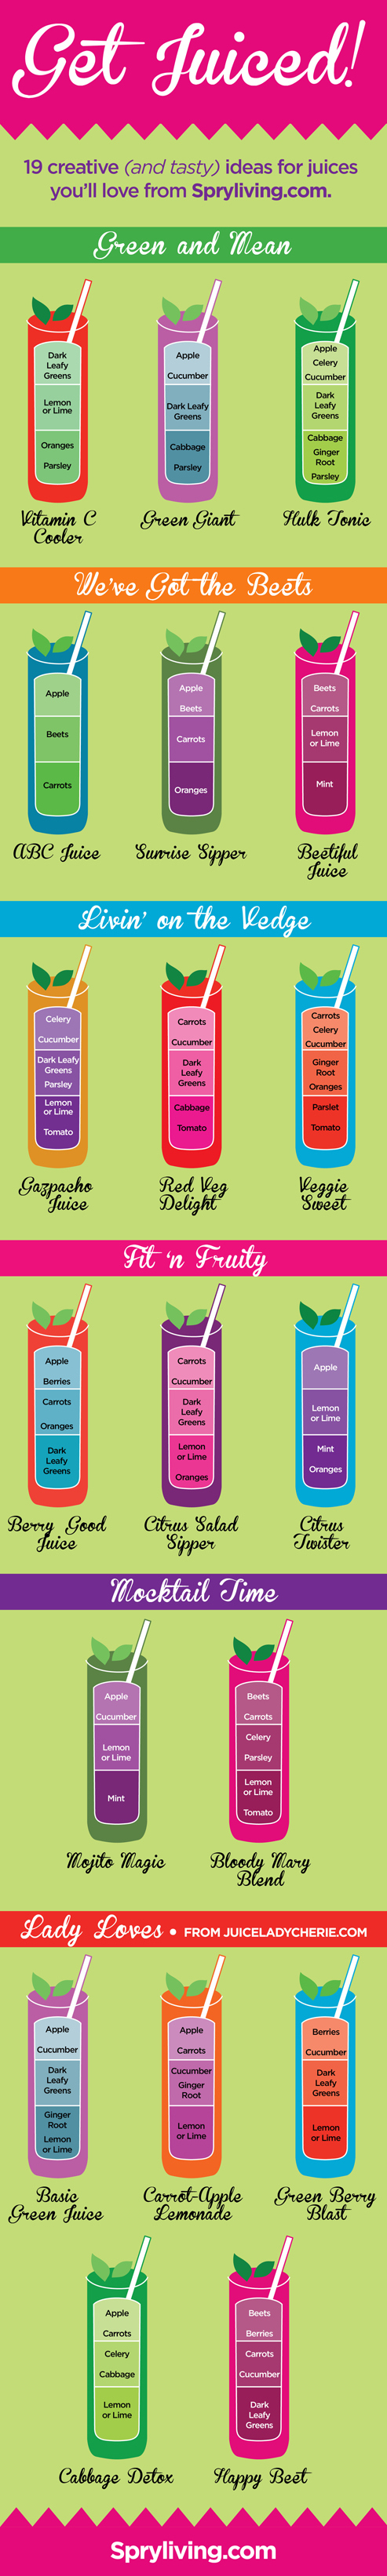 juicing-infographic-final